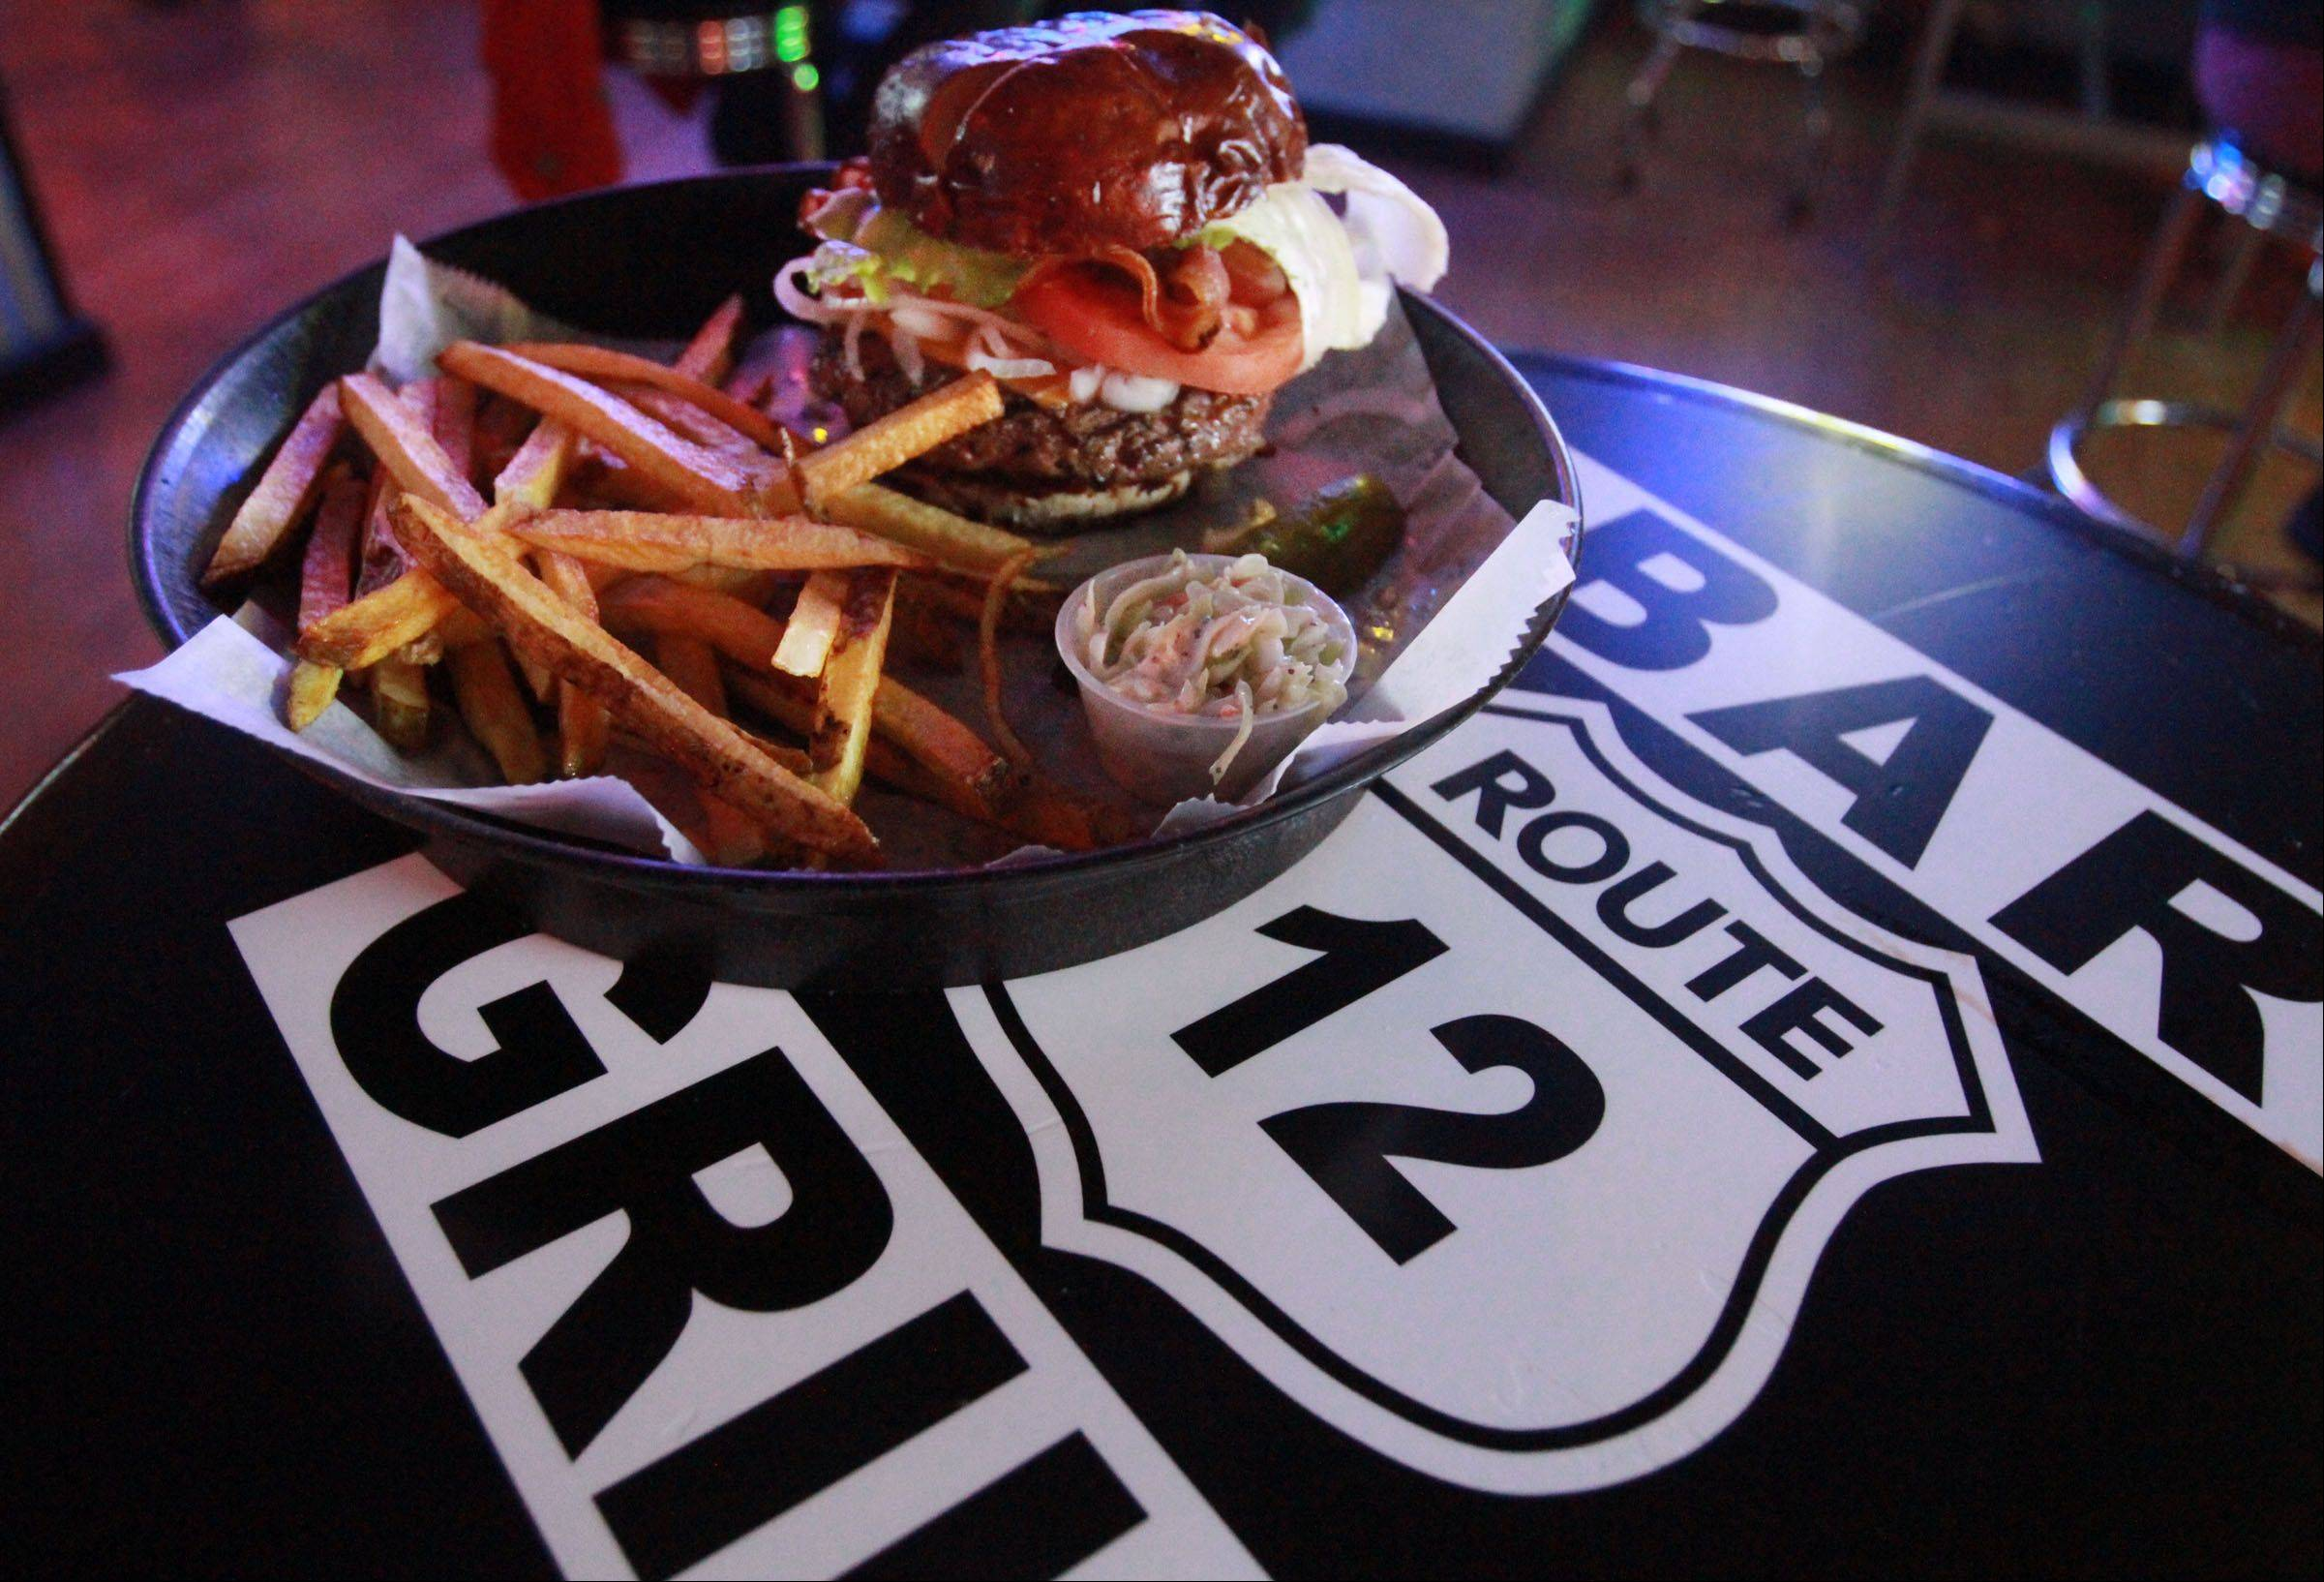 The bacon cheeseburger is one of many burger options at Route 12 Bar & Grill in Fox Lake.